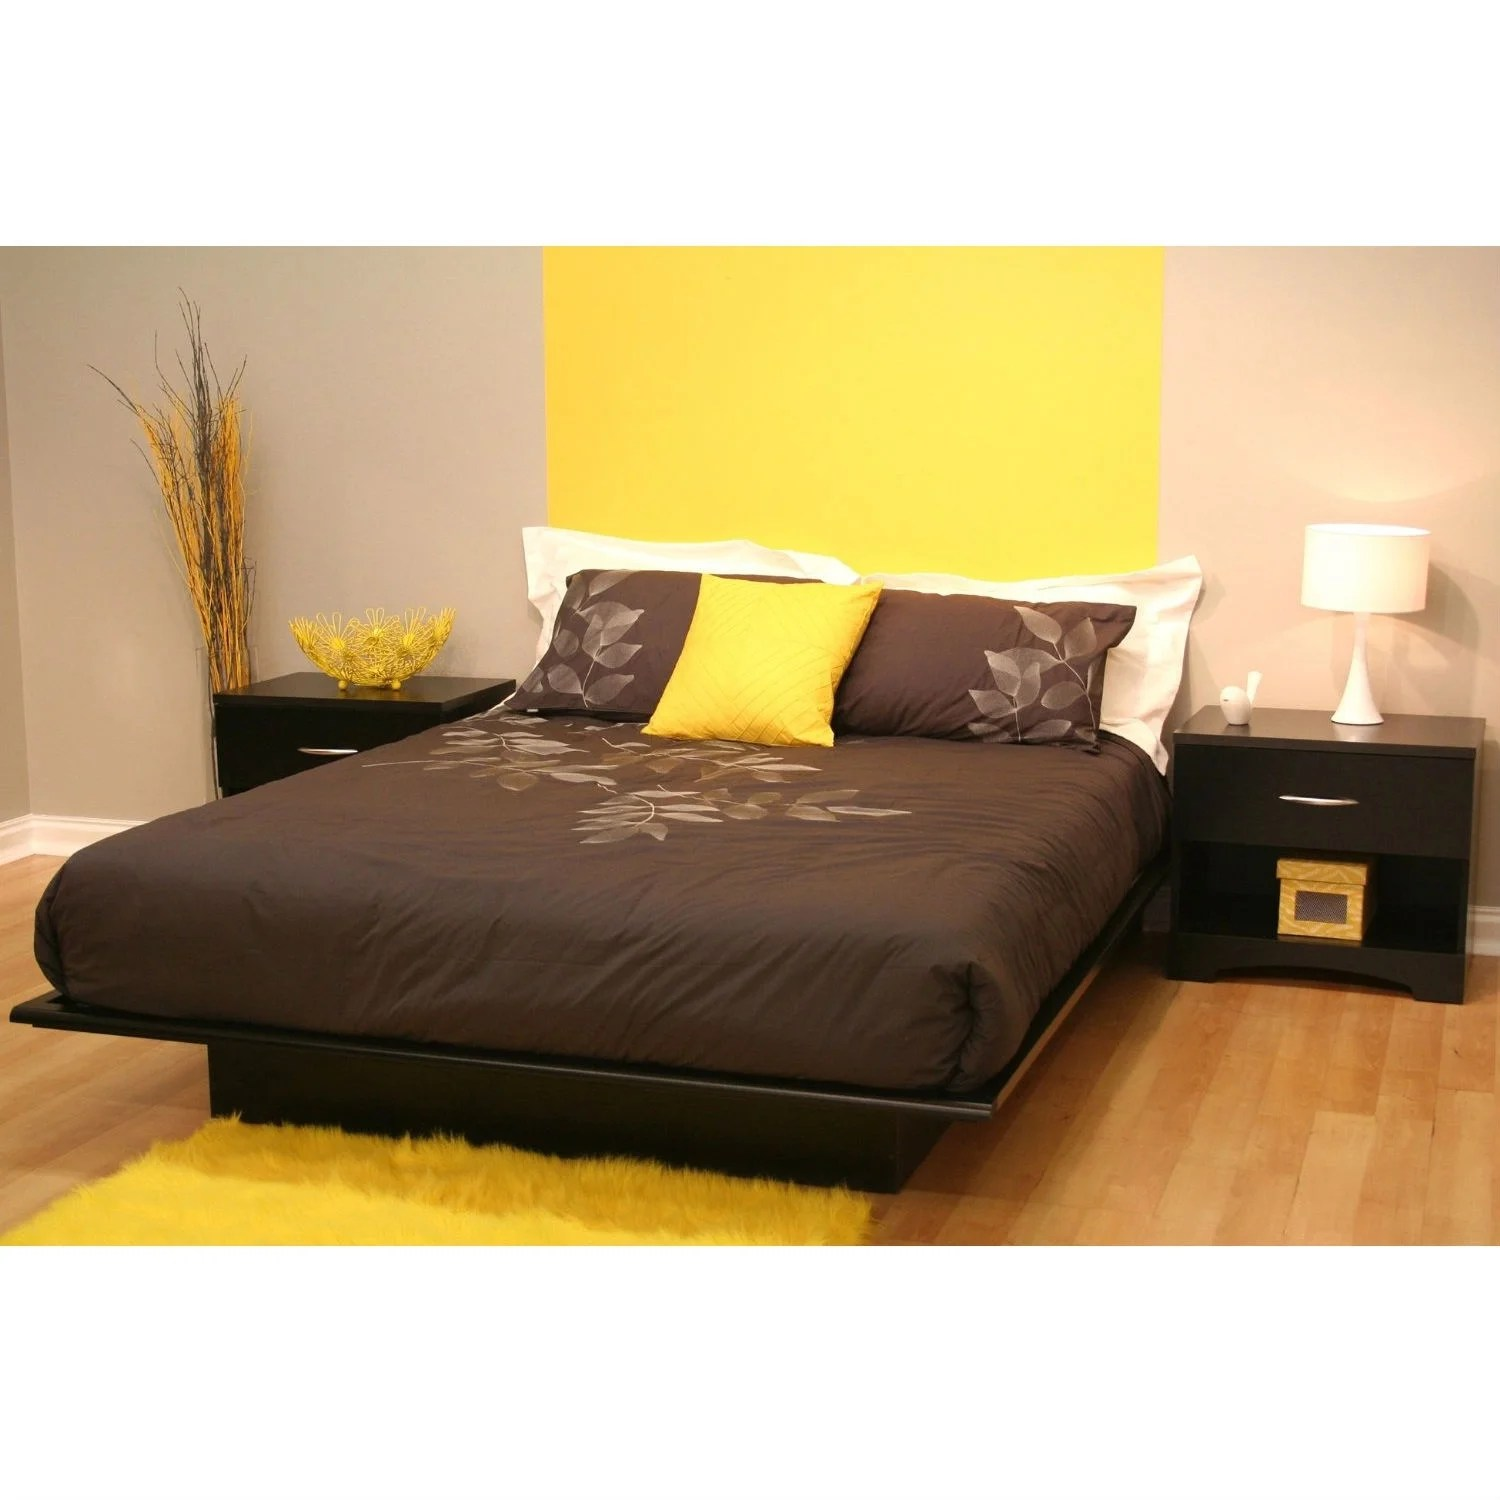 Queen Size Modern Platform Bed Frame In Black Wood Finish On Sale Overstock 29083805